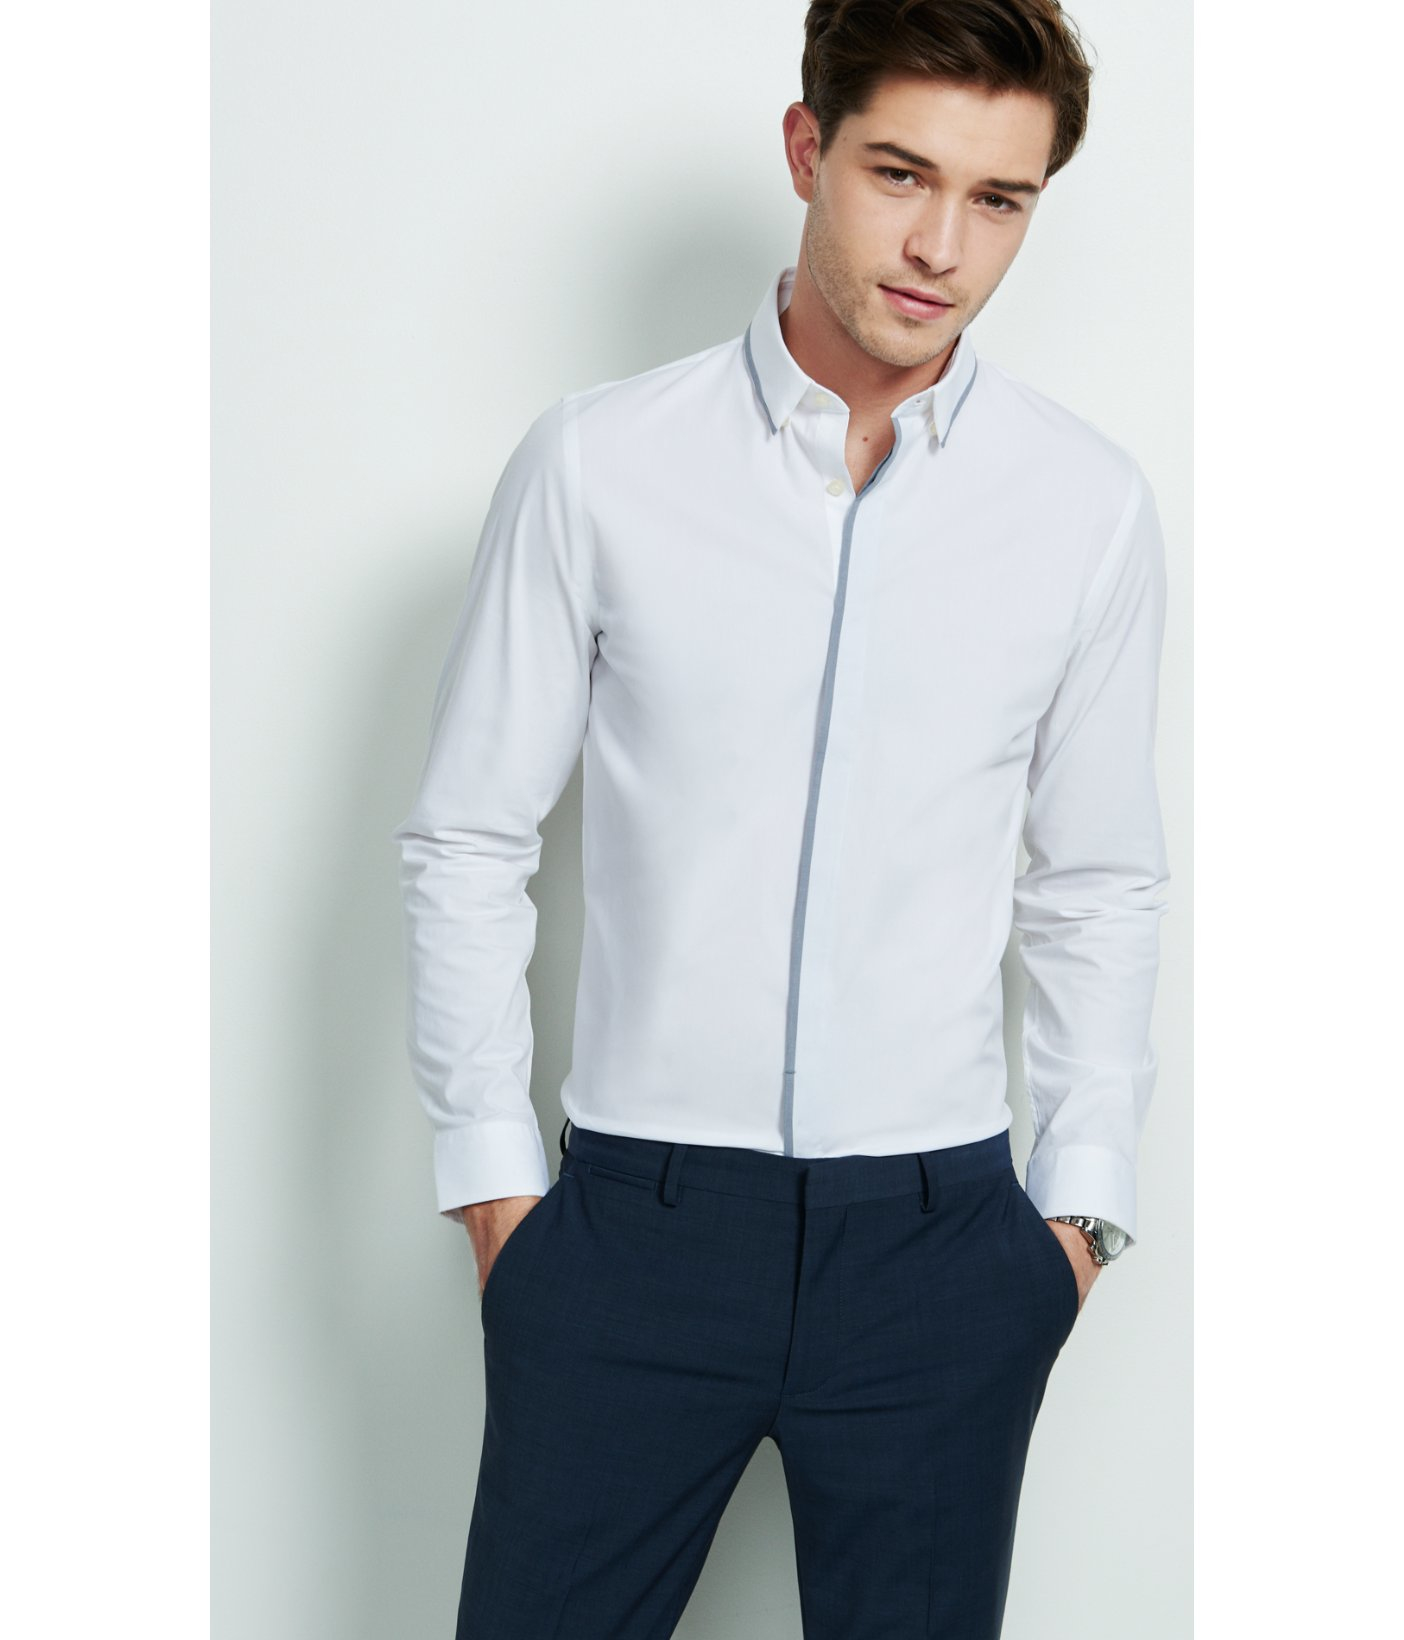 Dress Express shirts pictures